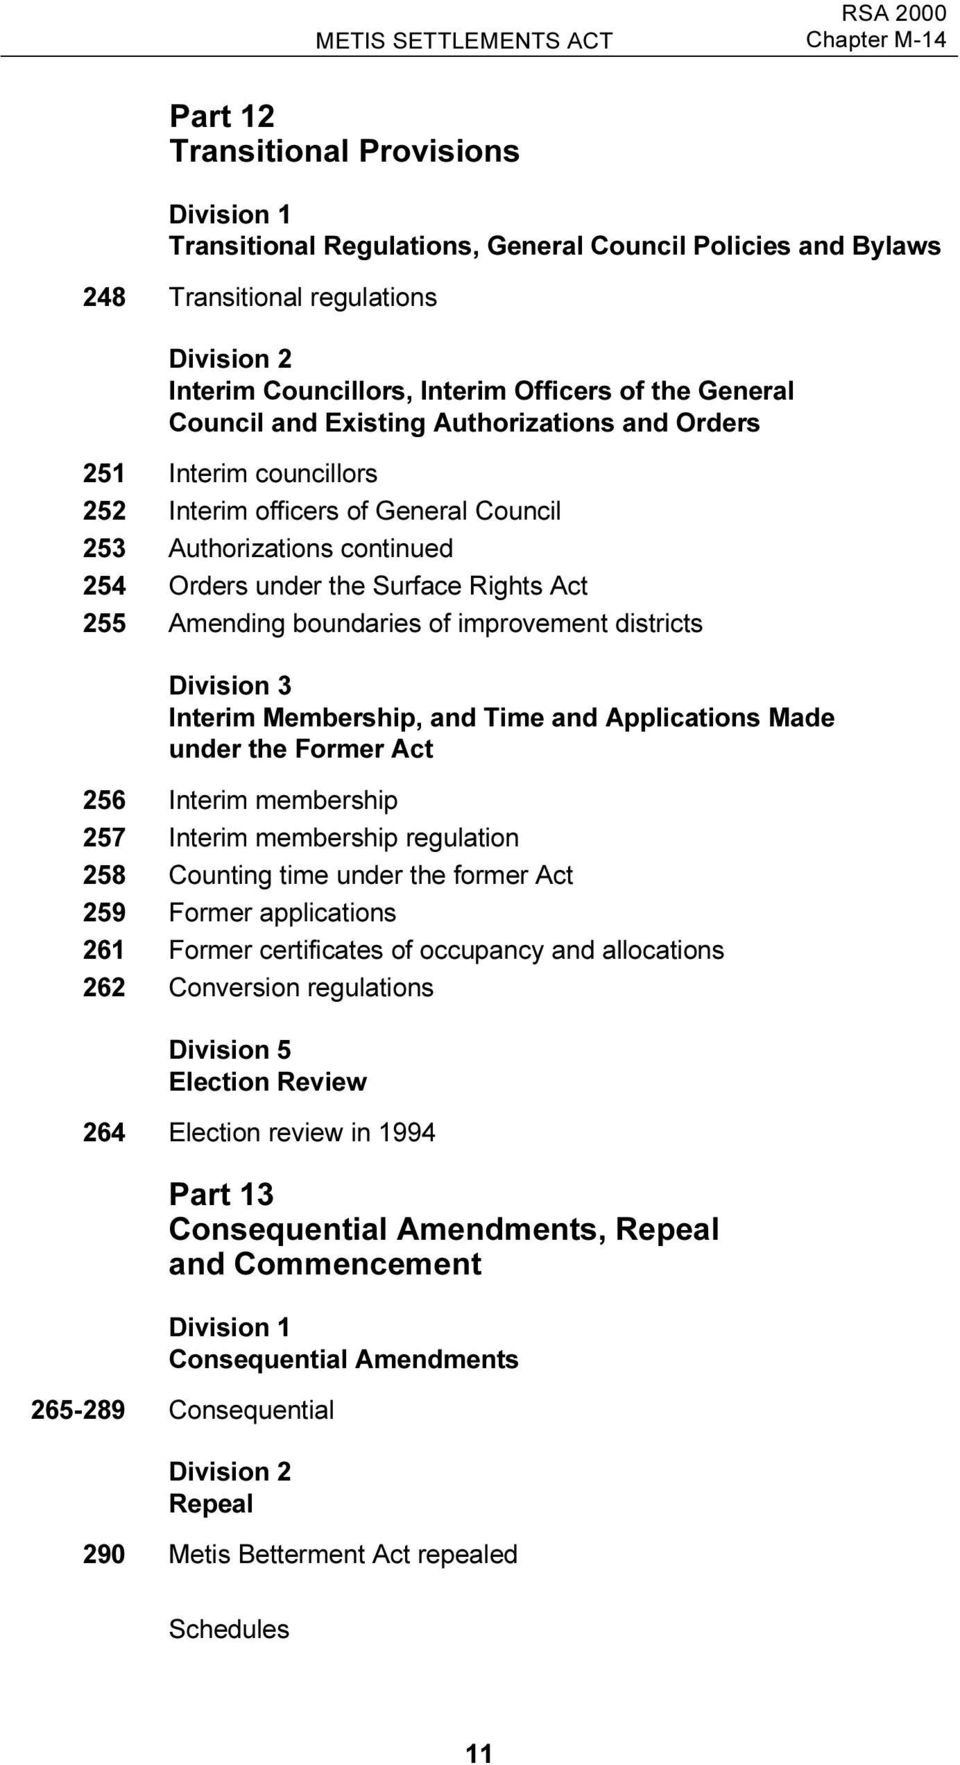 Surface Rights Act 255 Amending boundaries of improvement districts Division 3 Interim Membership, and Time and Applications Made under the Former Act 256 Interim membership 257 Interim membership